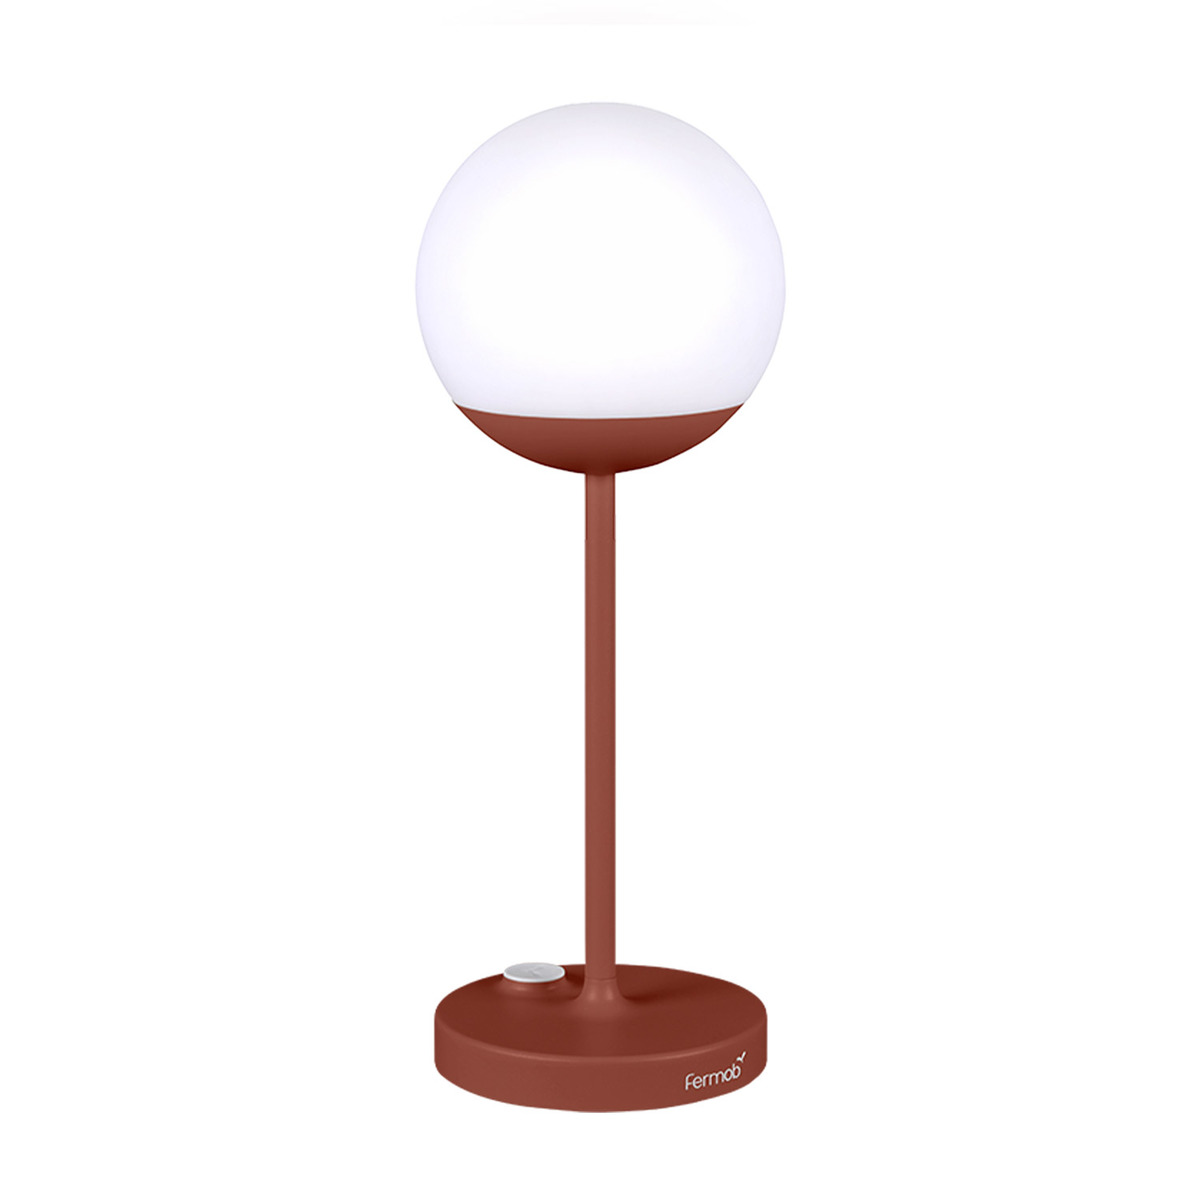 Fermob Mooon! table lamp, red ochre from Fermob